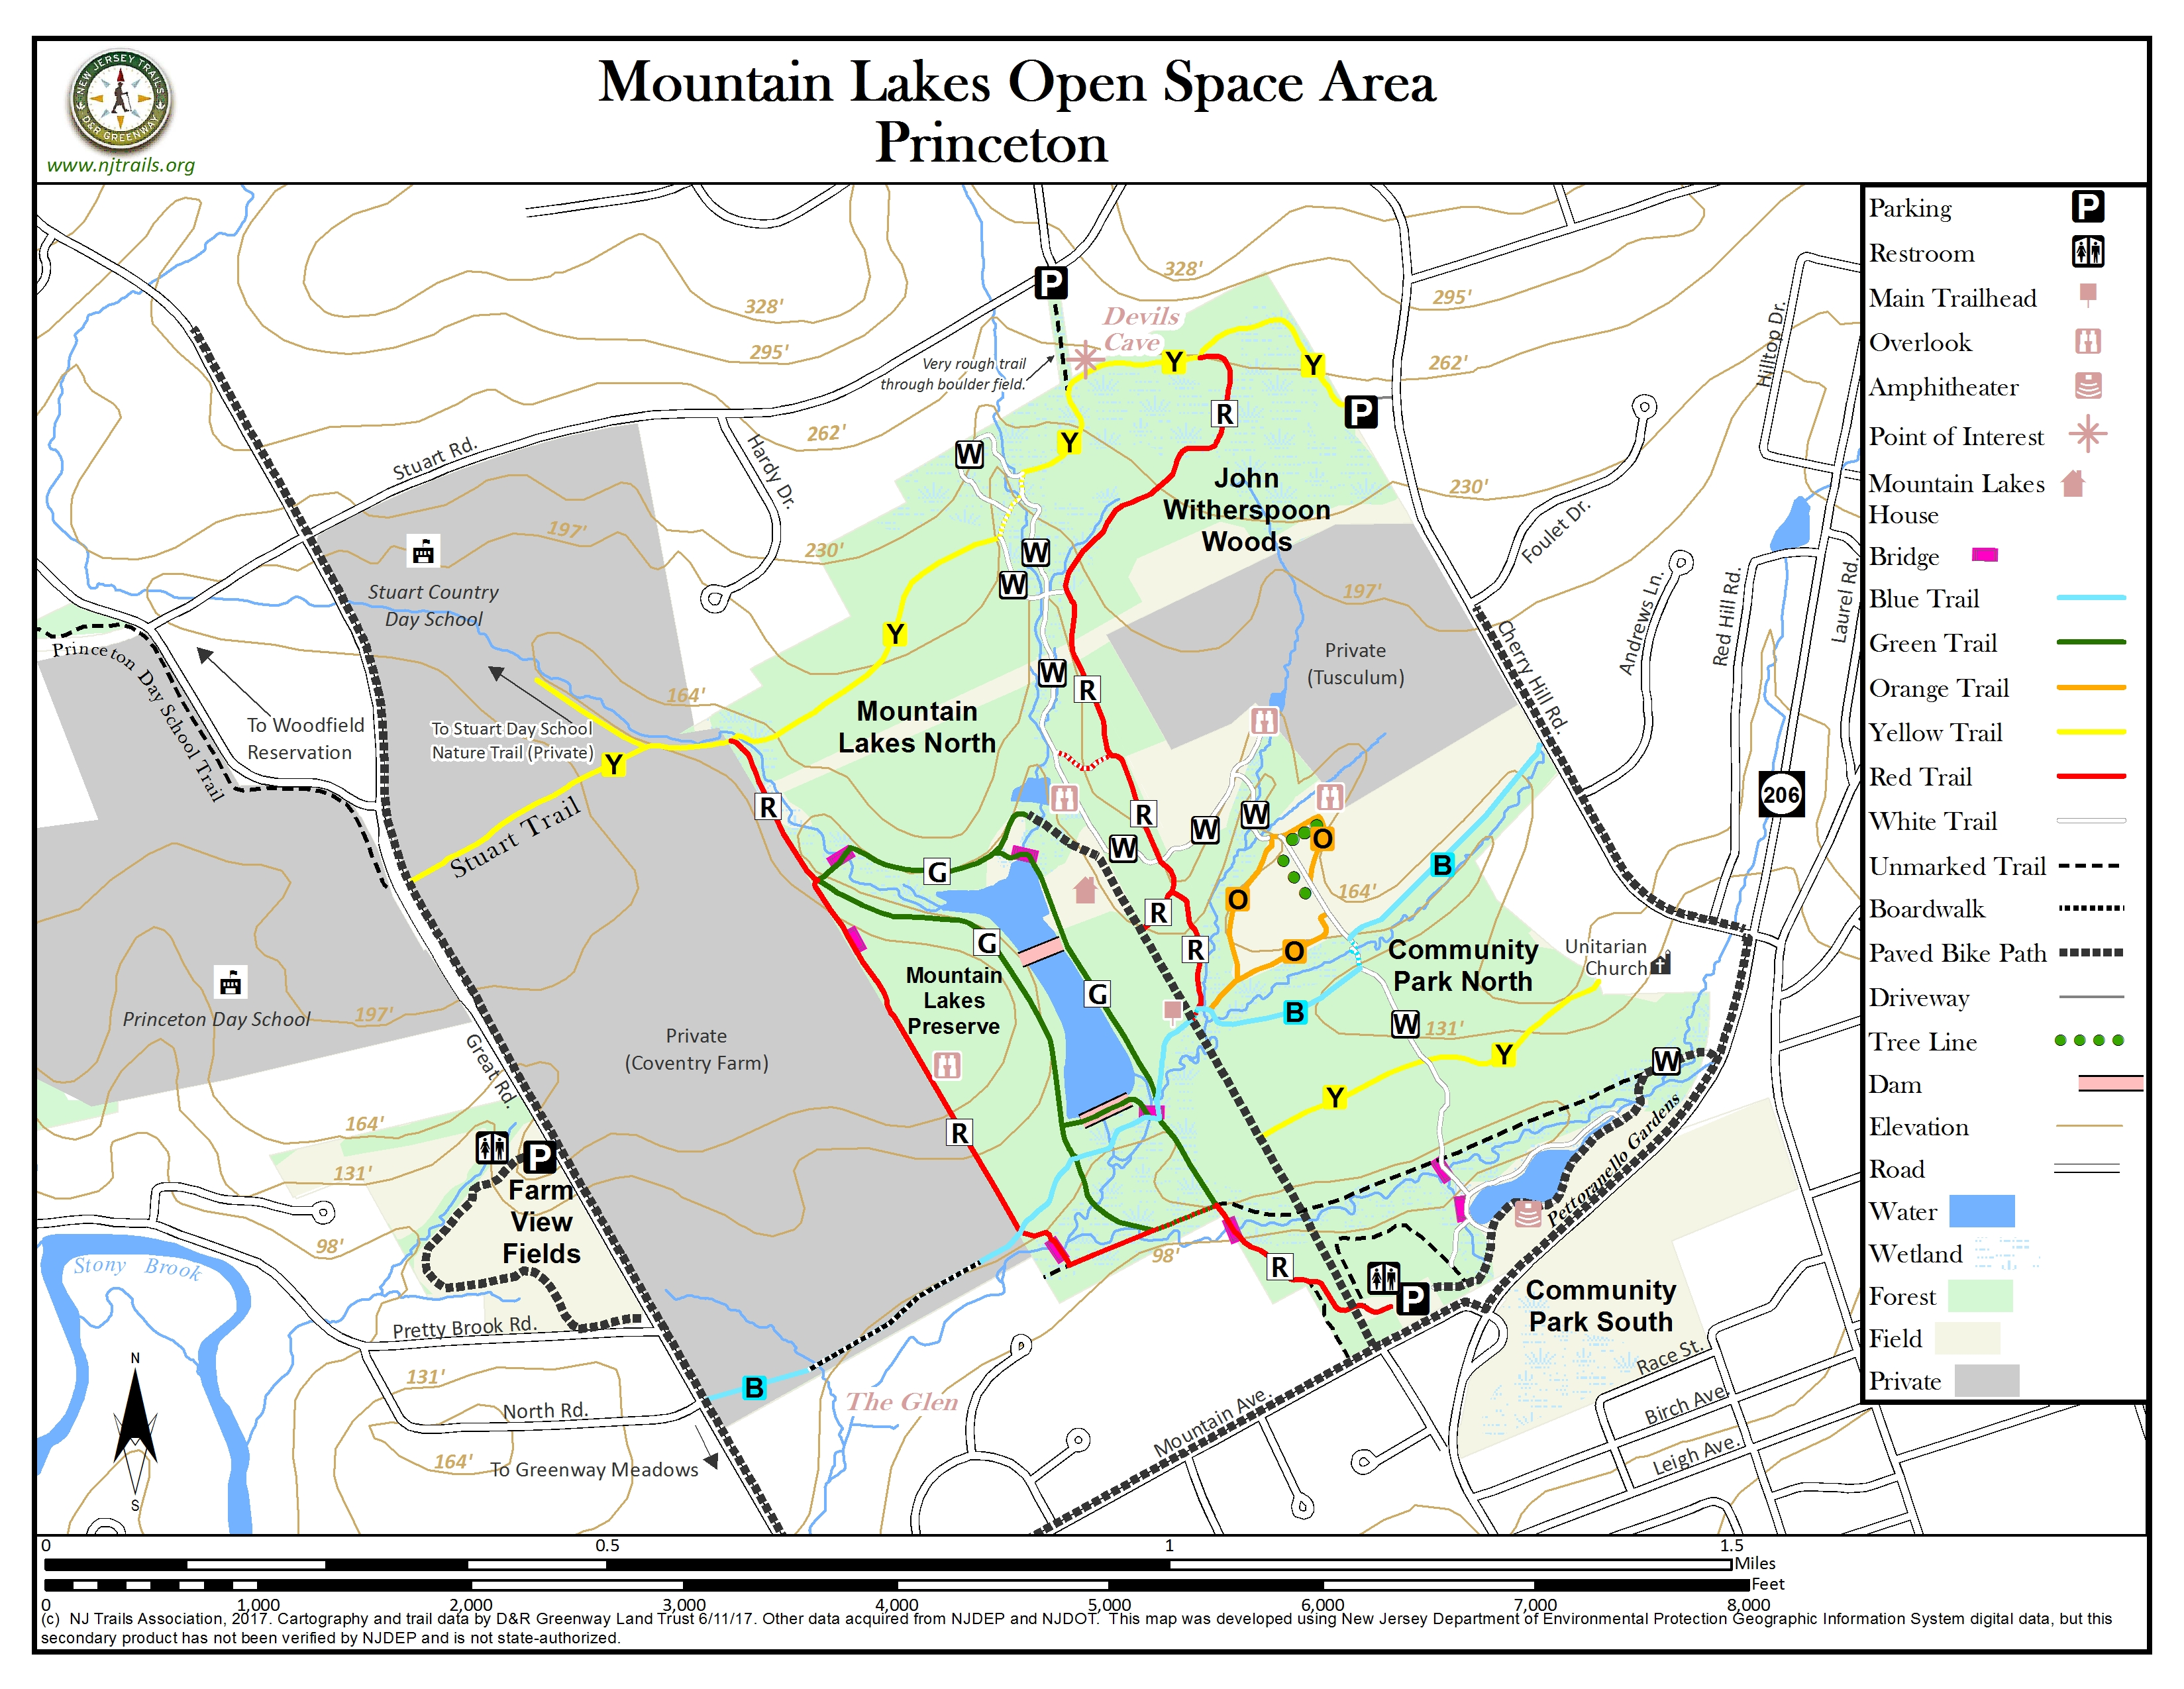 Mountain Lakes Open Space Area New Jersey Trails Association - Princeton new jersey north and southern us map